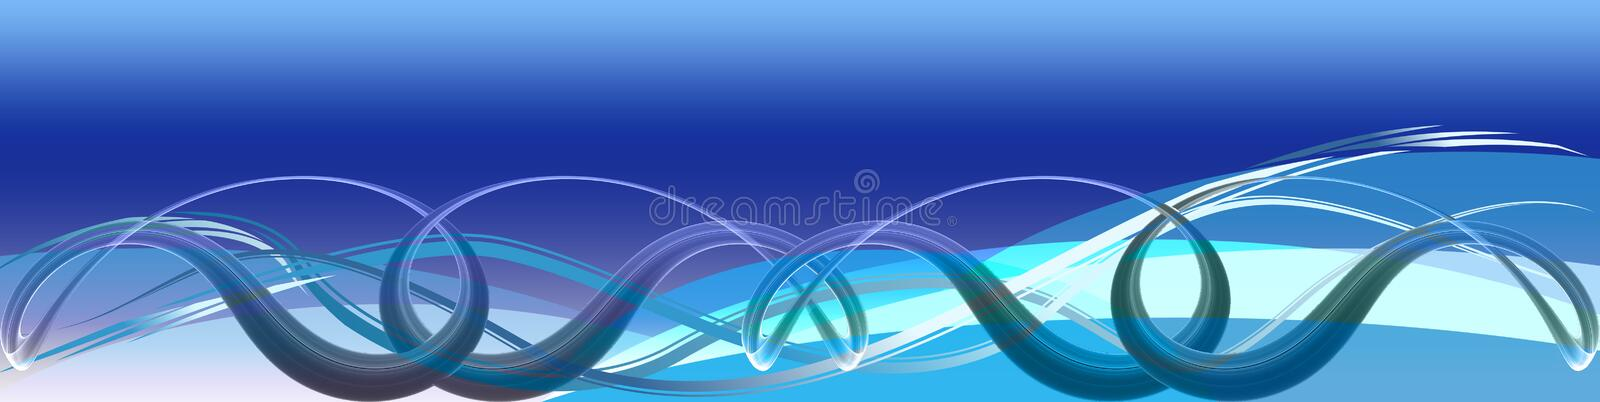 Blue Waves And Connections. Conceptual blue banner / header with waves and decorative connecting shapes going along with the waves. Can be used as a basic royalty free illustration